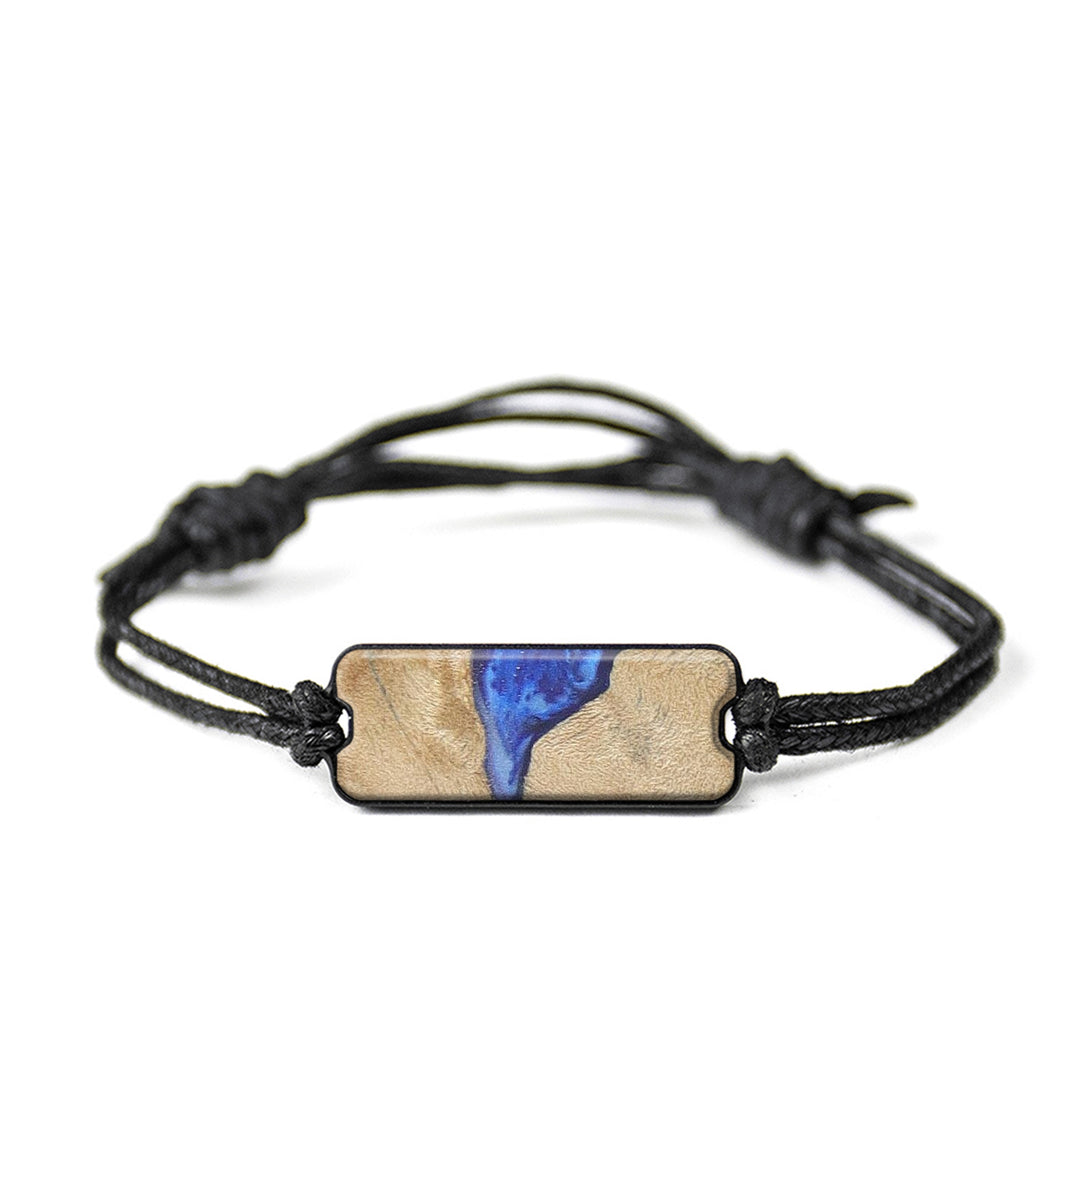 Classic Wood+Resin Bracelet - Ferdinanda (Dark Blue, 358159)